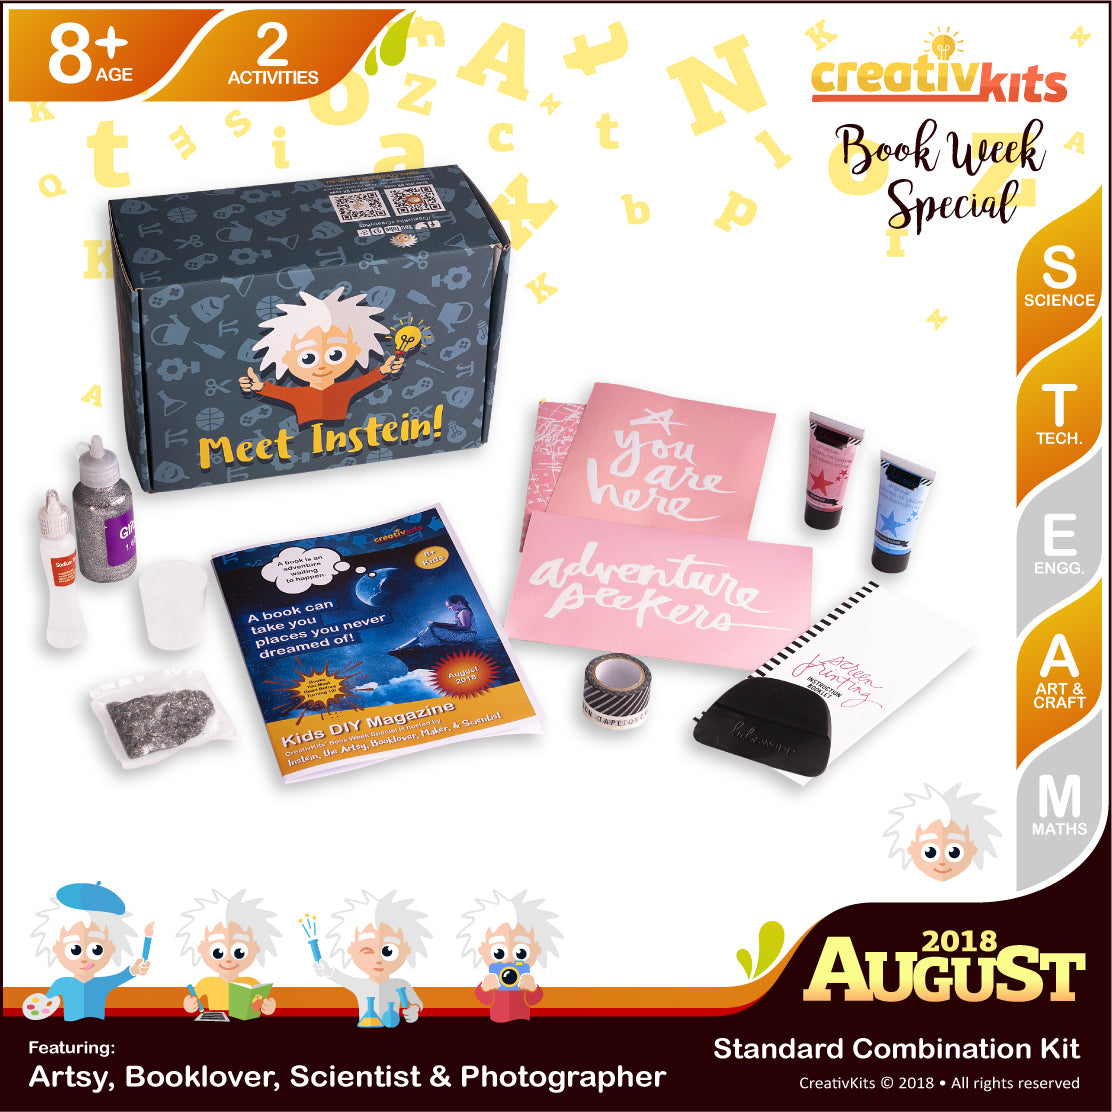 DIY Holographic Slime and DIY Screen Printing Art | August Standard Art & Science Combo Kit | Age 8+